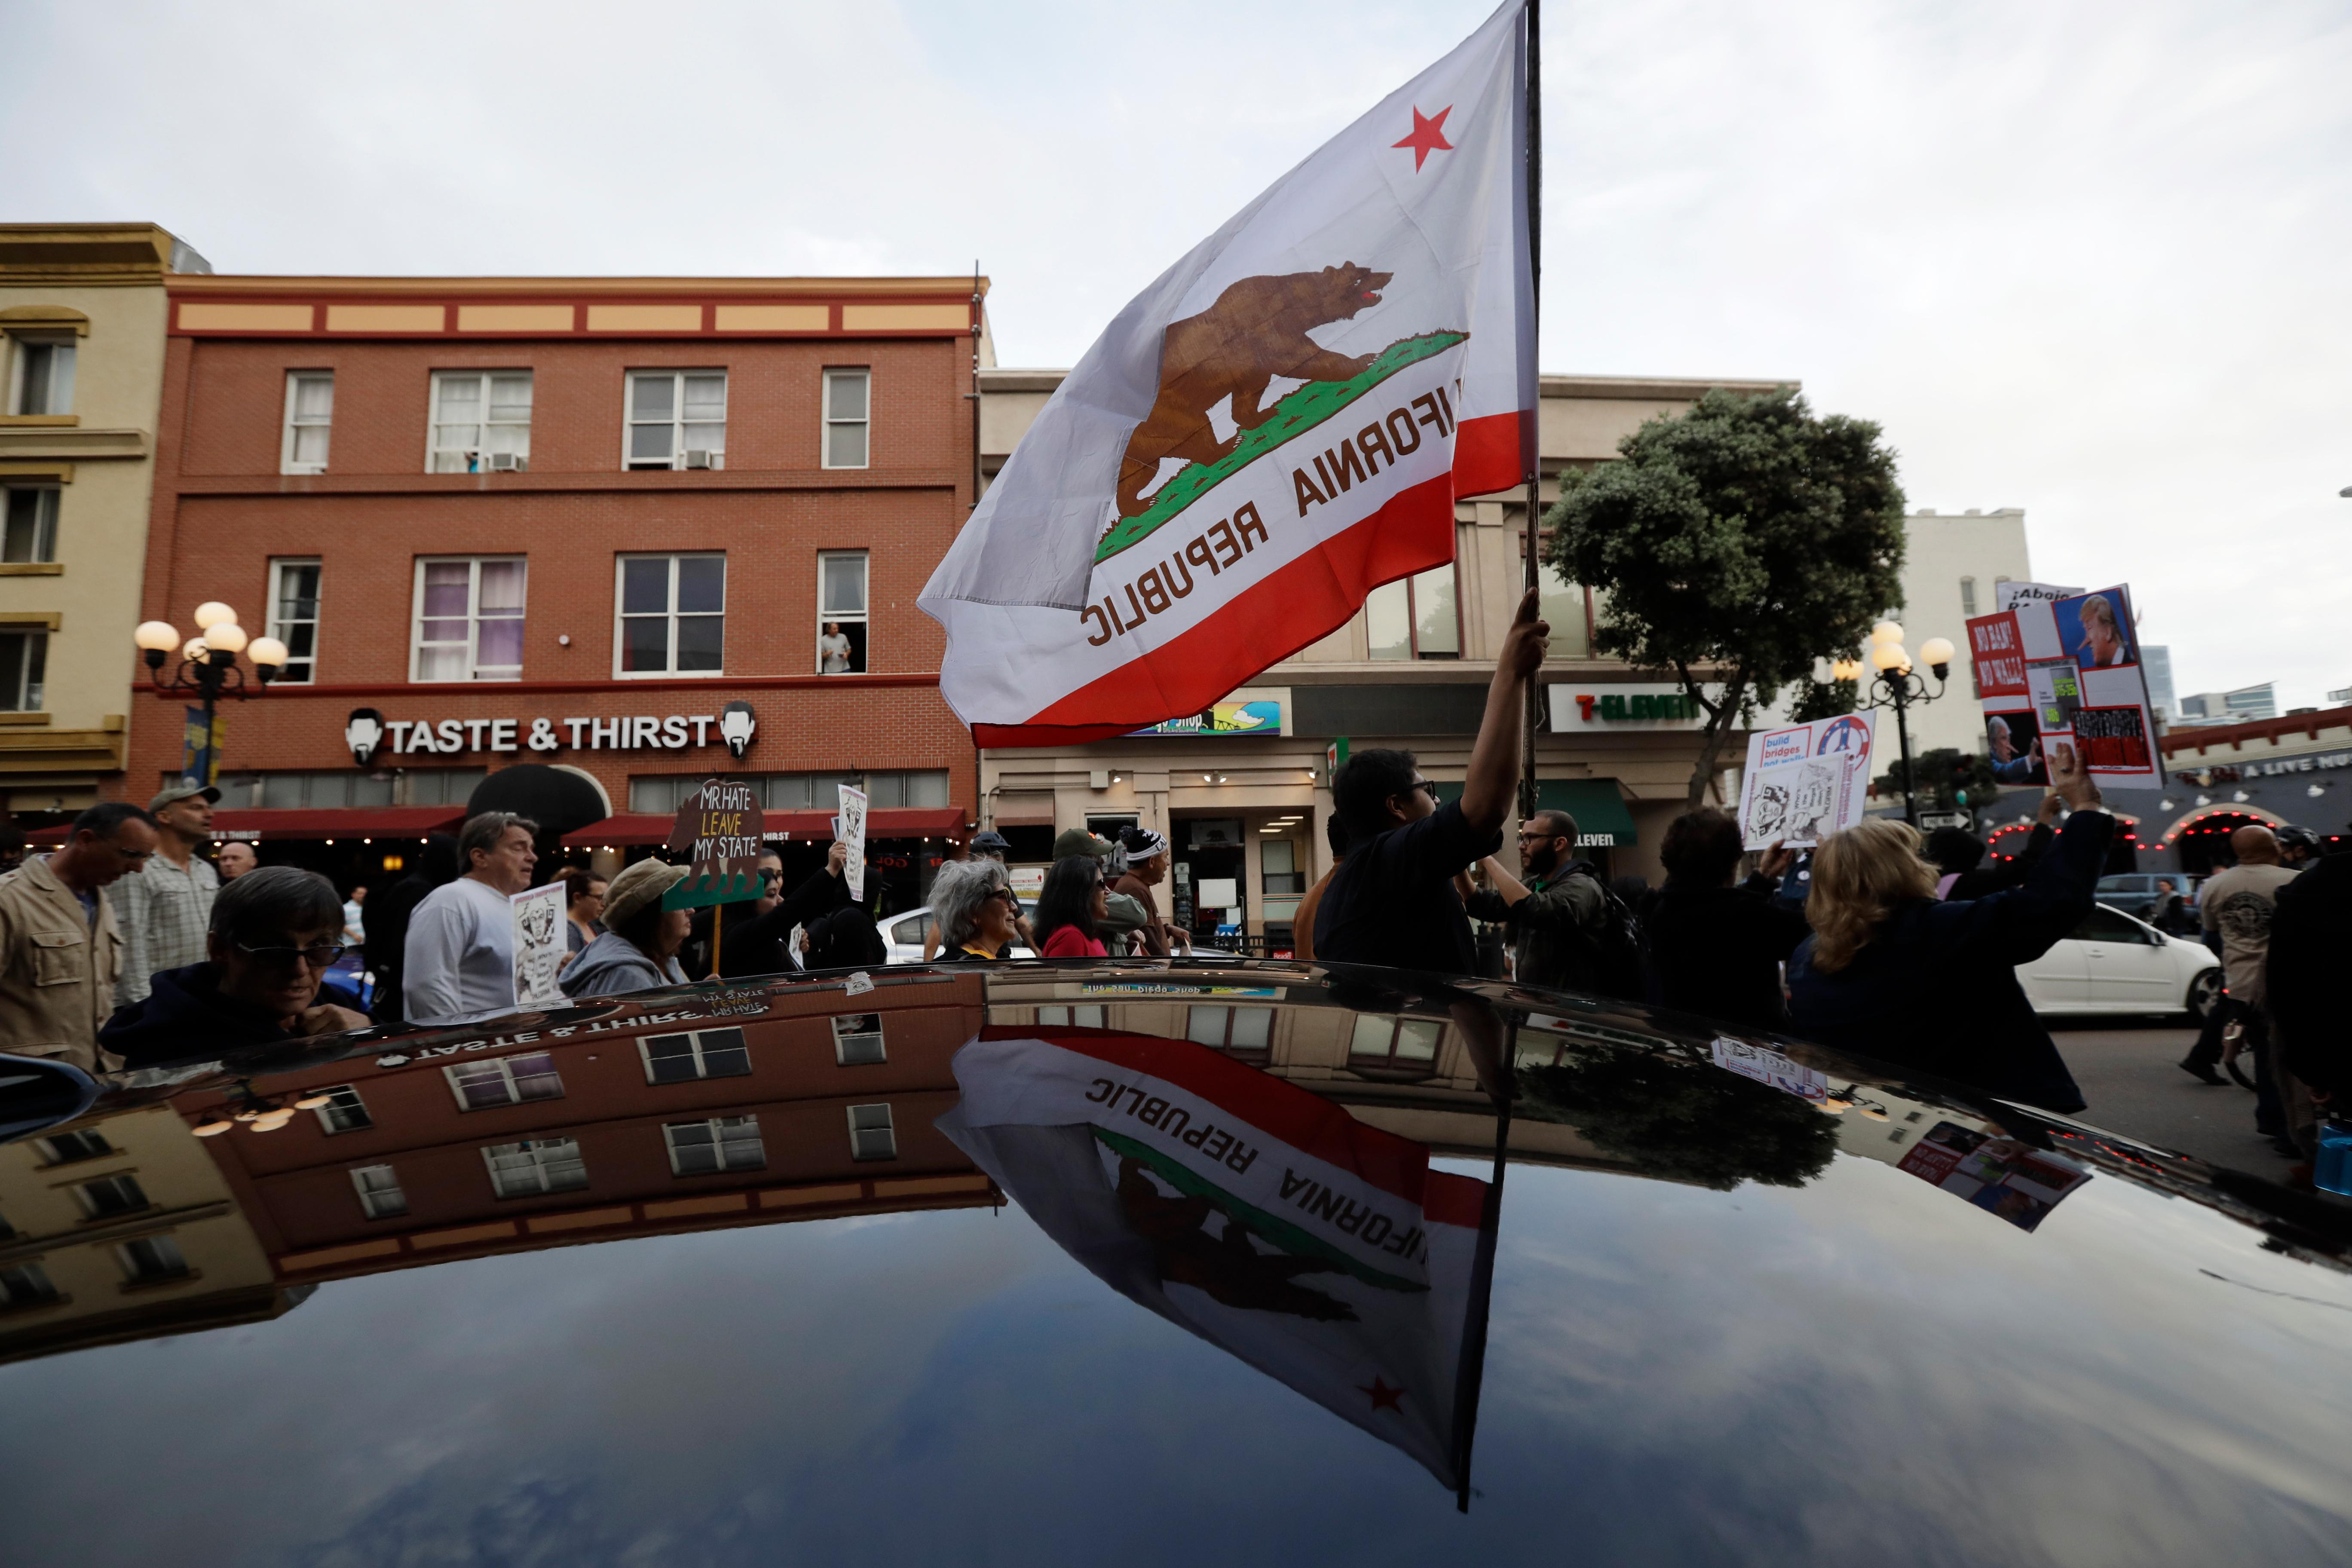 People march during a rally against a scheduled upcoming visit by President Donald Trump, Monday, March 12, 2018, in San Diego. Trump is scheduled to visit San Diego, Tuesday, setting foot in California for his first time as president. (AP Photo/Gregory Bull)